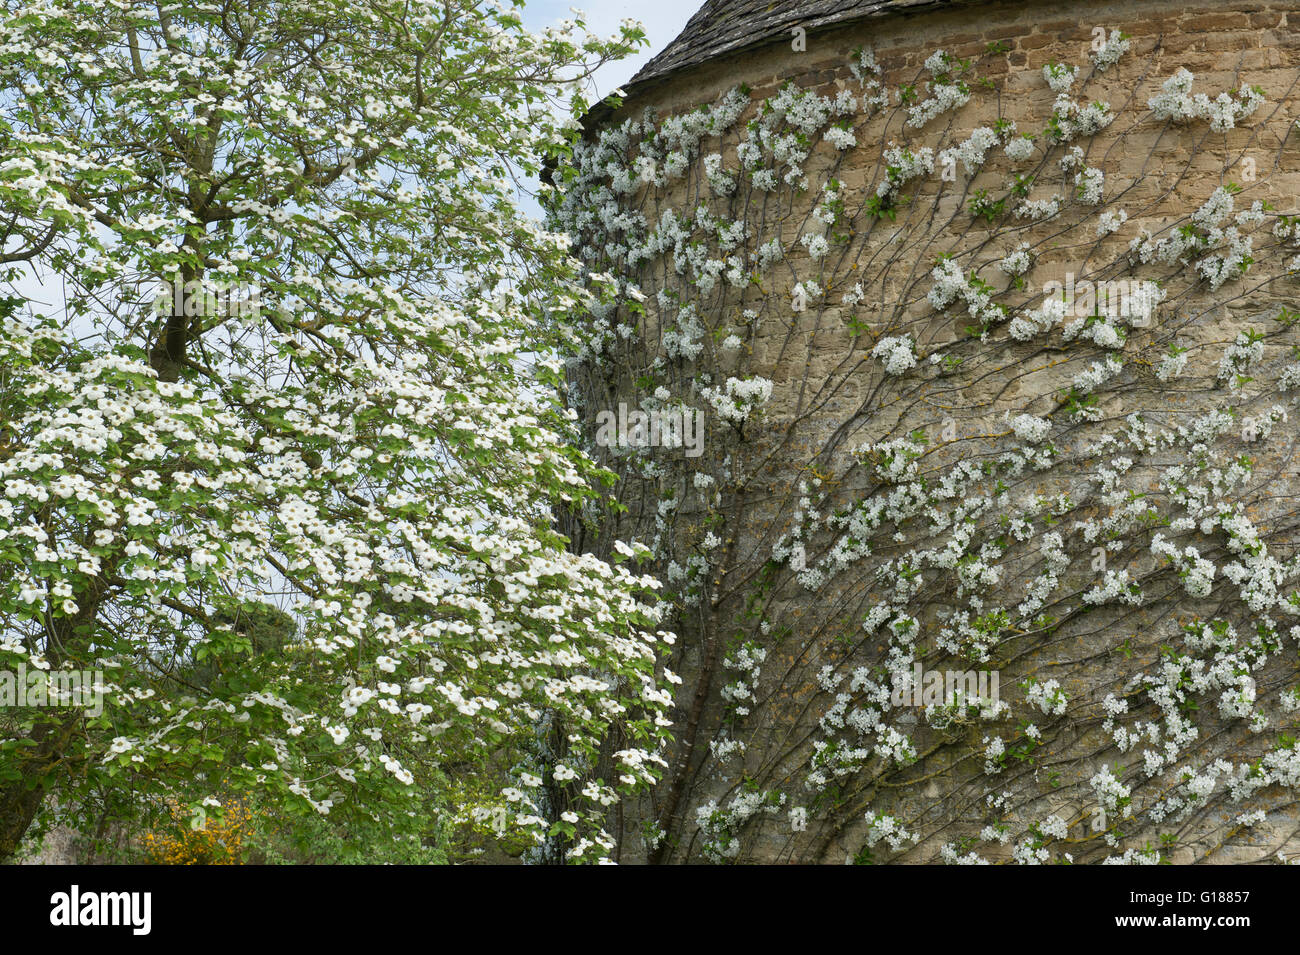 Espalier fruit tree in blossom against the pigeon house at Rousham House and Garden. Oxfordshire, England - Stock Image